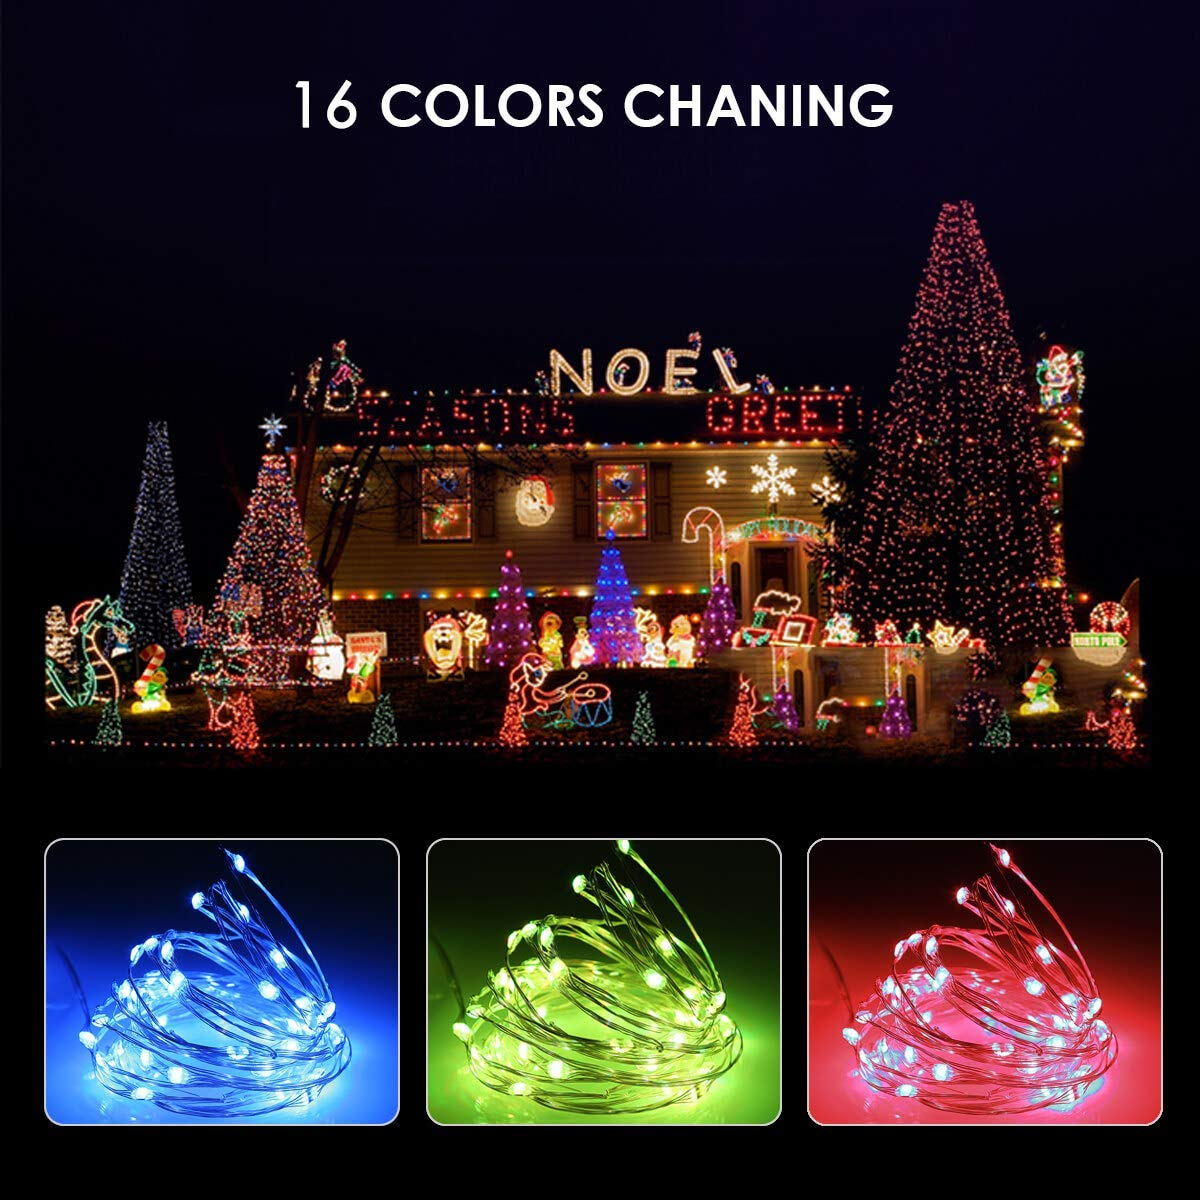 ALOVECO Fairy String Lights Battery Operated, 16ft 50 LED Multi Color Changing Twinkle String Lights with Remote,16 Colors Waterproof Outdoor & Indoor Decorative Lights for Bedroom Christmas Wedding